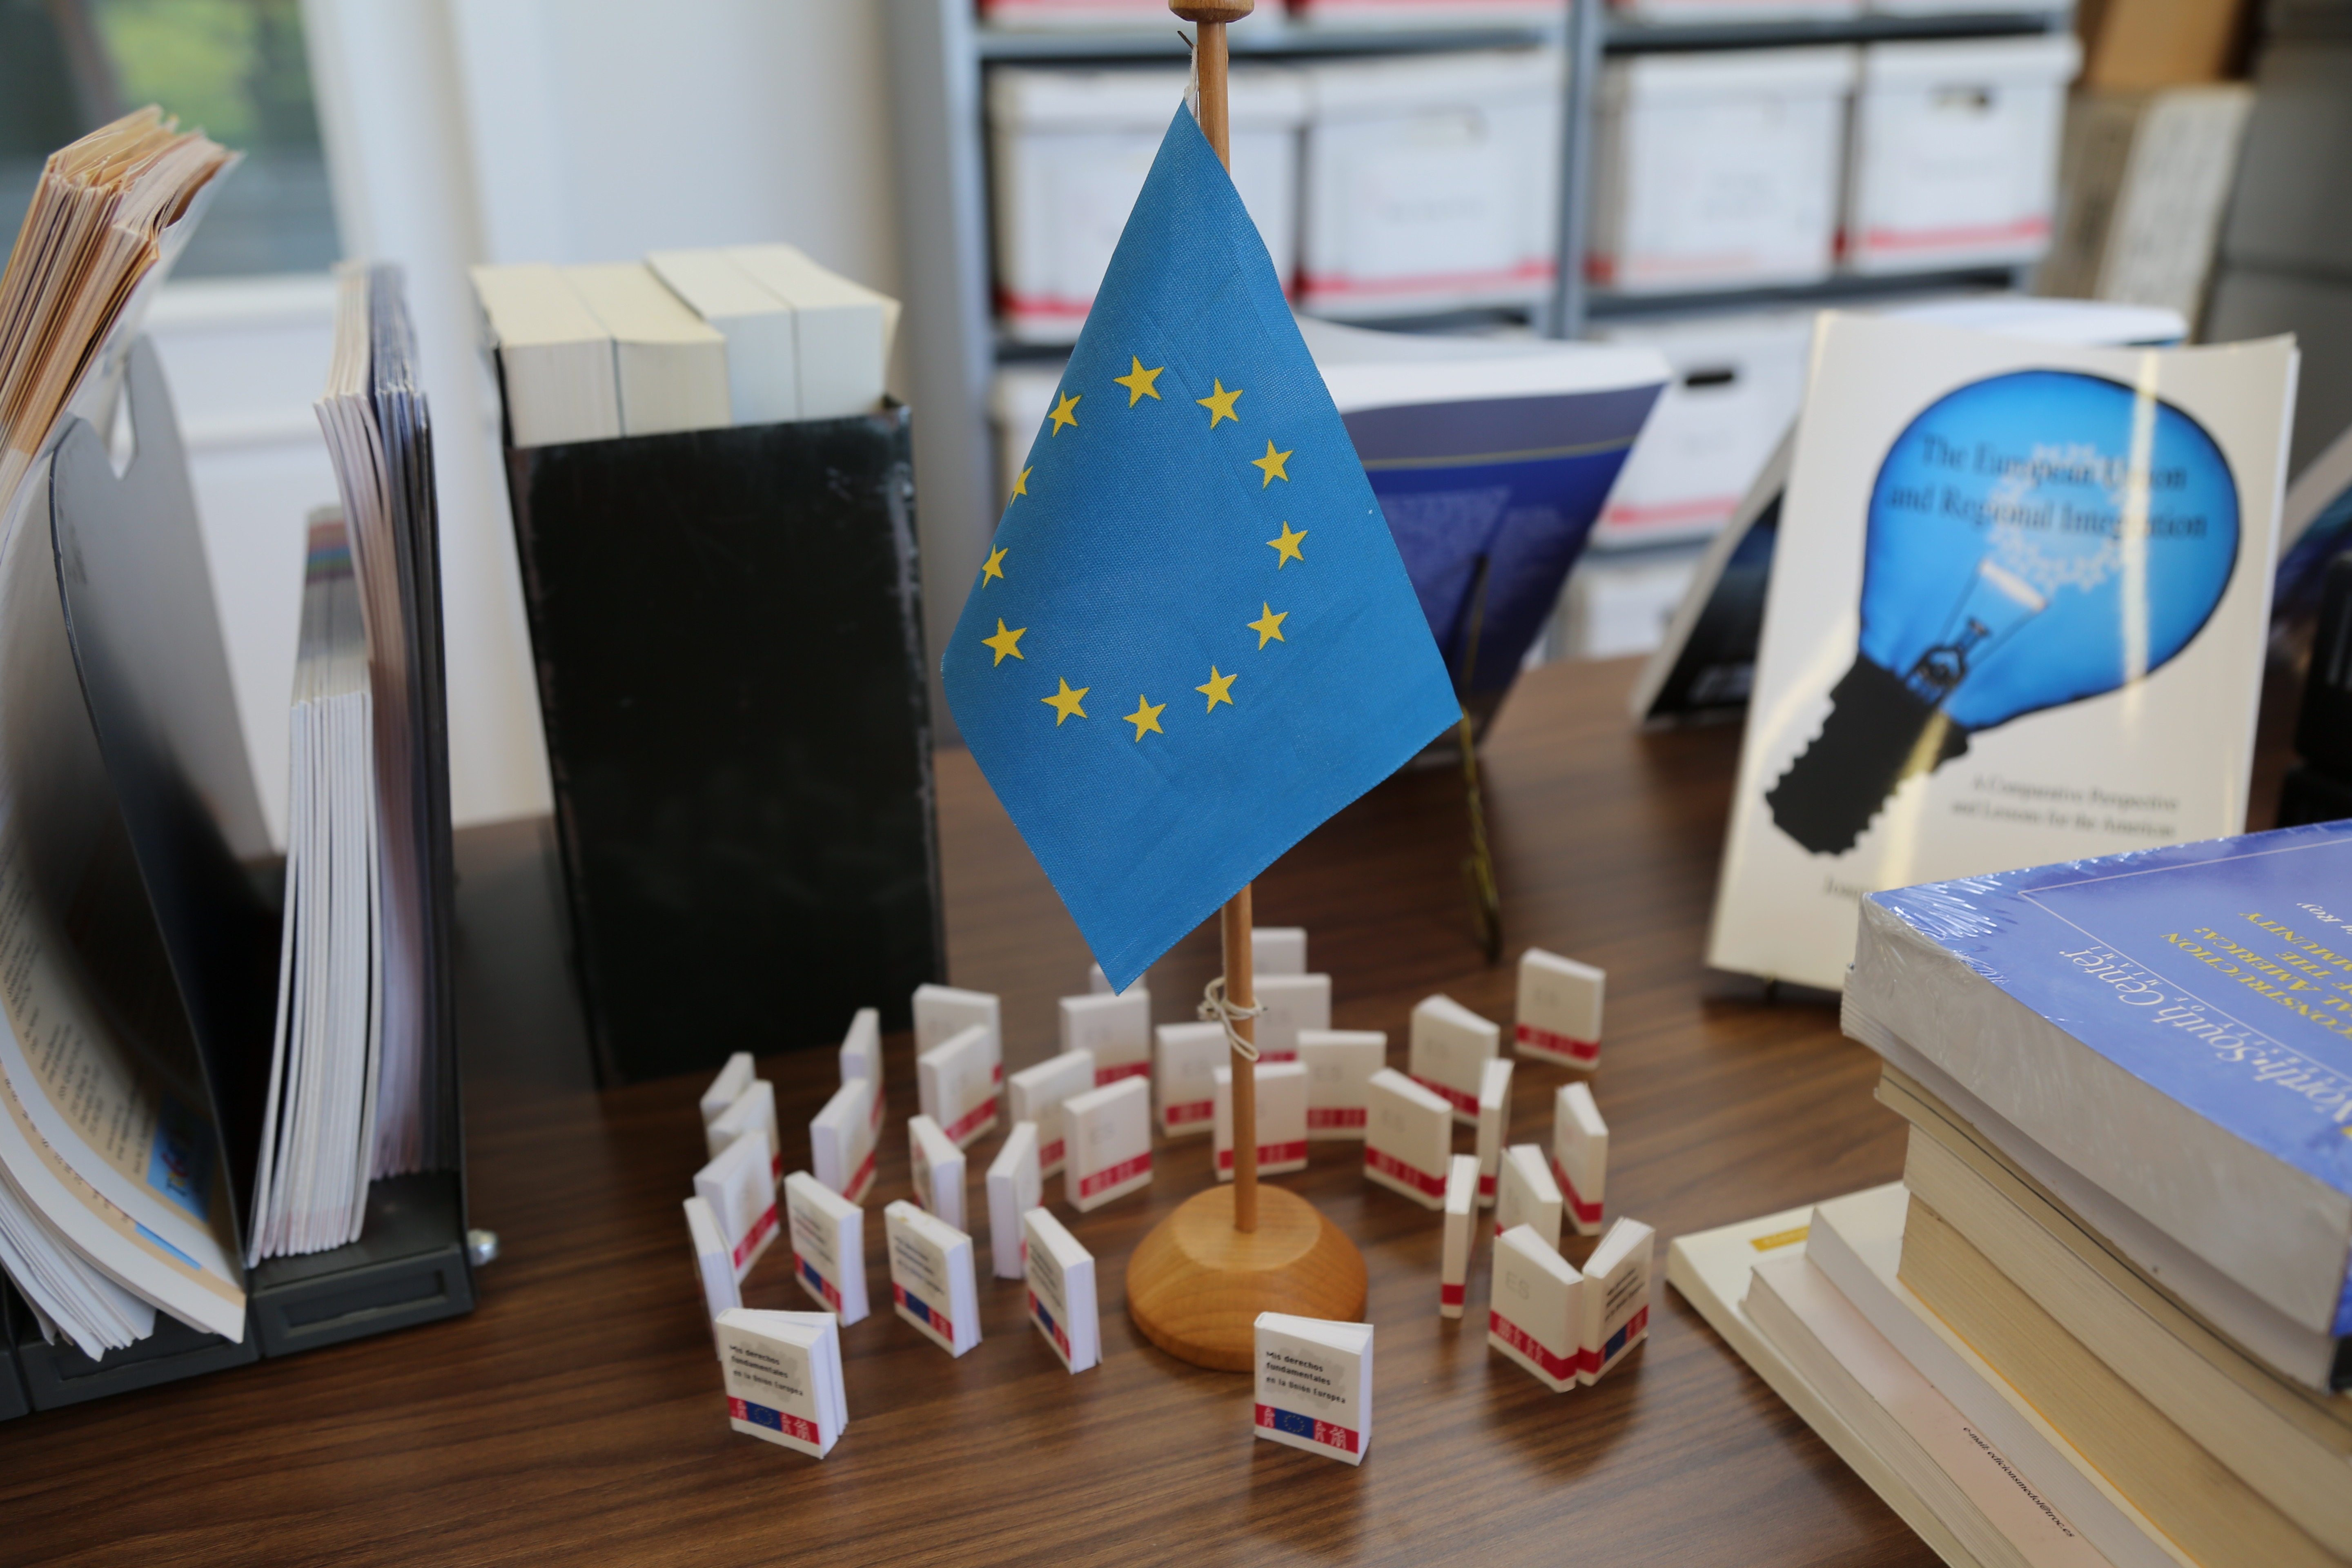 Photo of EU flags on a table